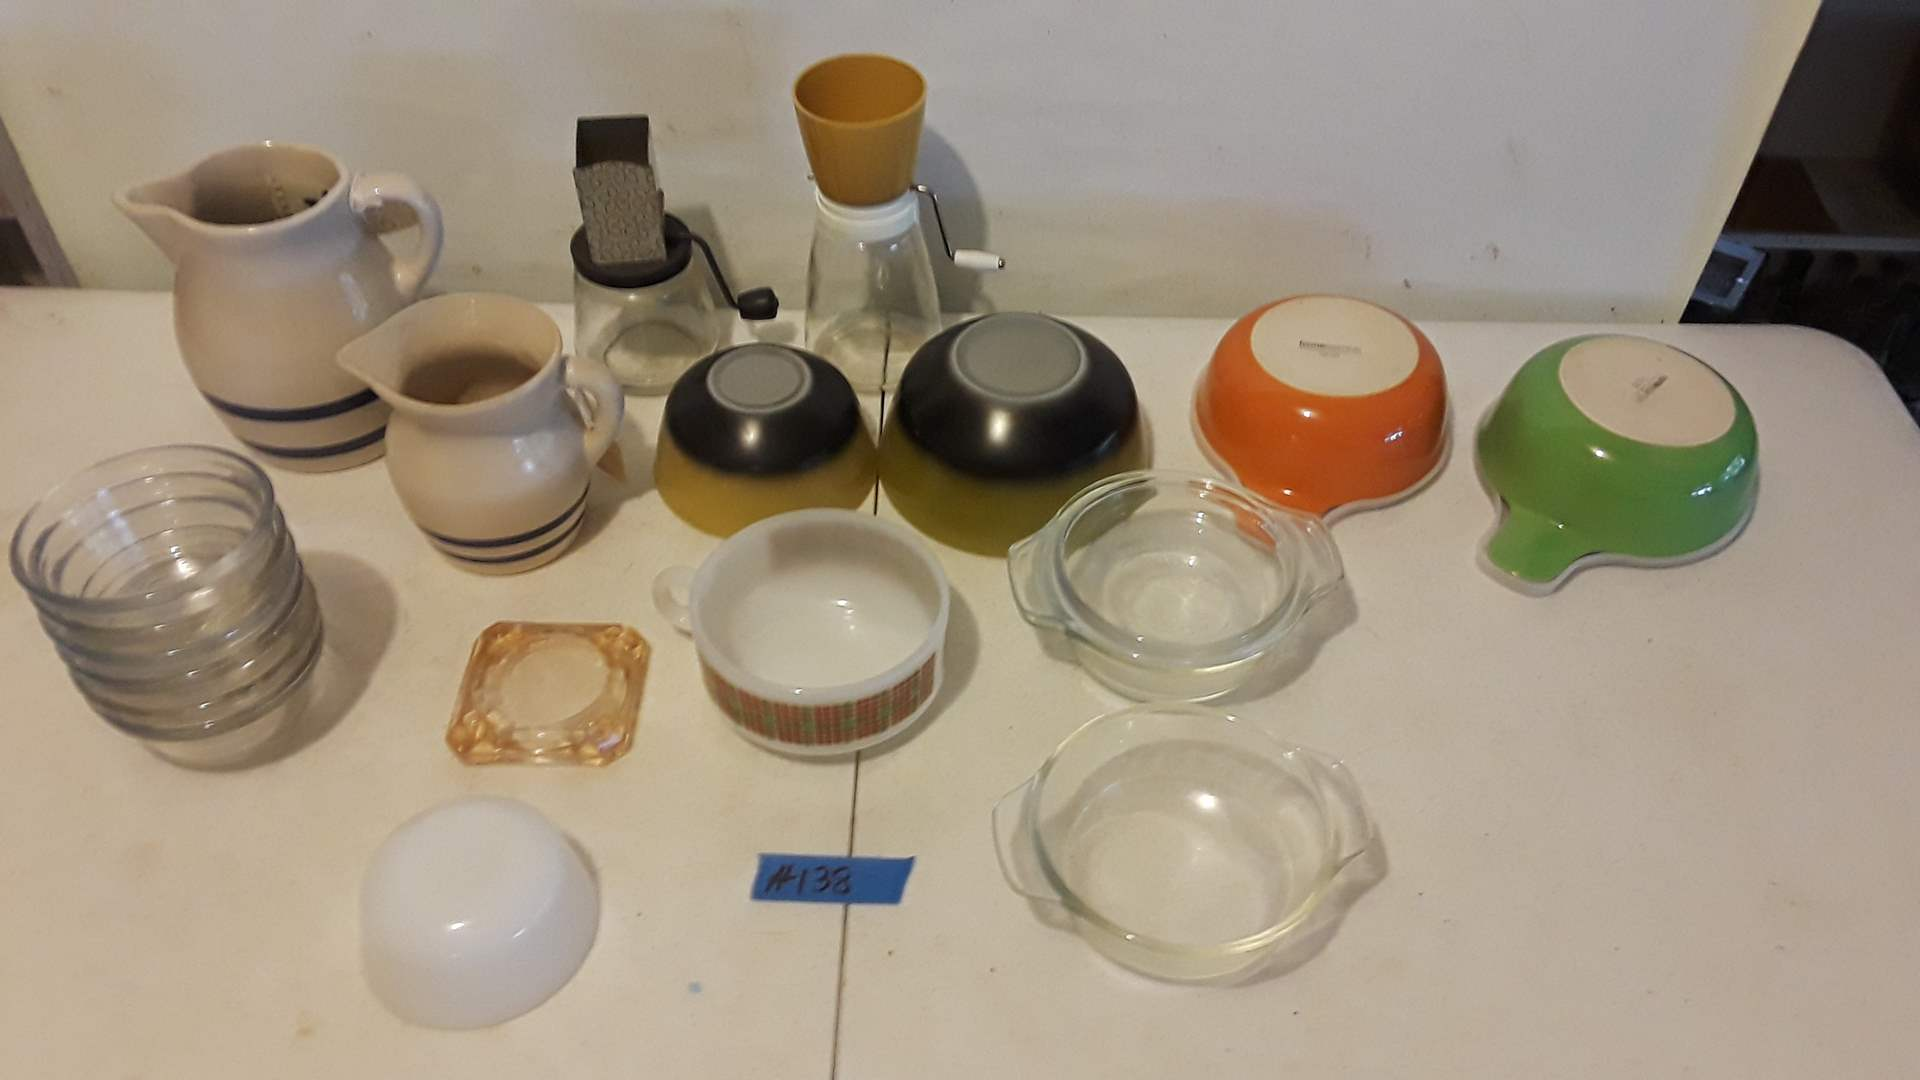 Lot # 138 ROBINSON RANSBOTTOM POTTERY CO PITCHERS, FIREKING BOWLS, MIXED COLLECTABLE GLASSWARE